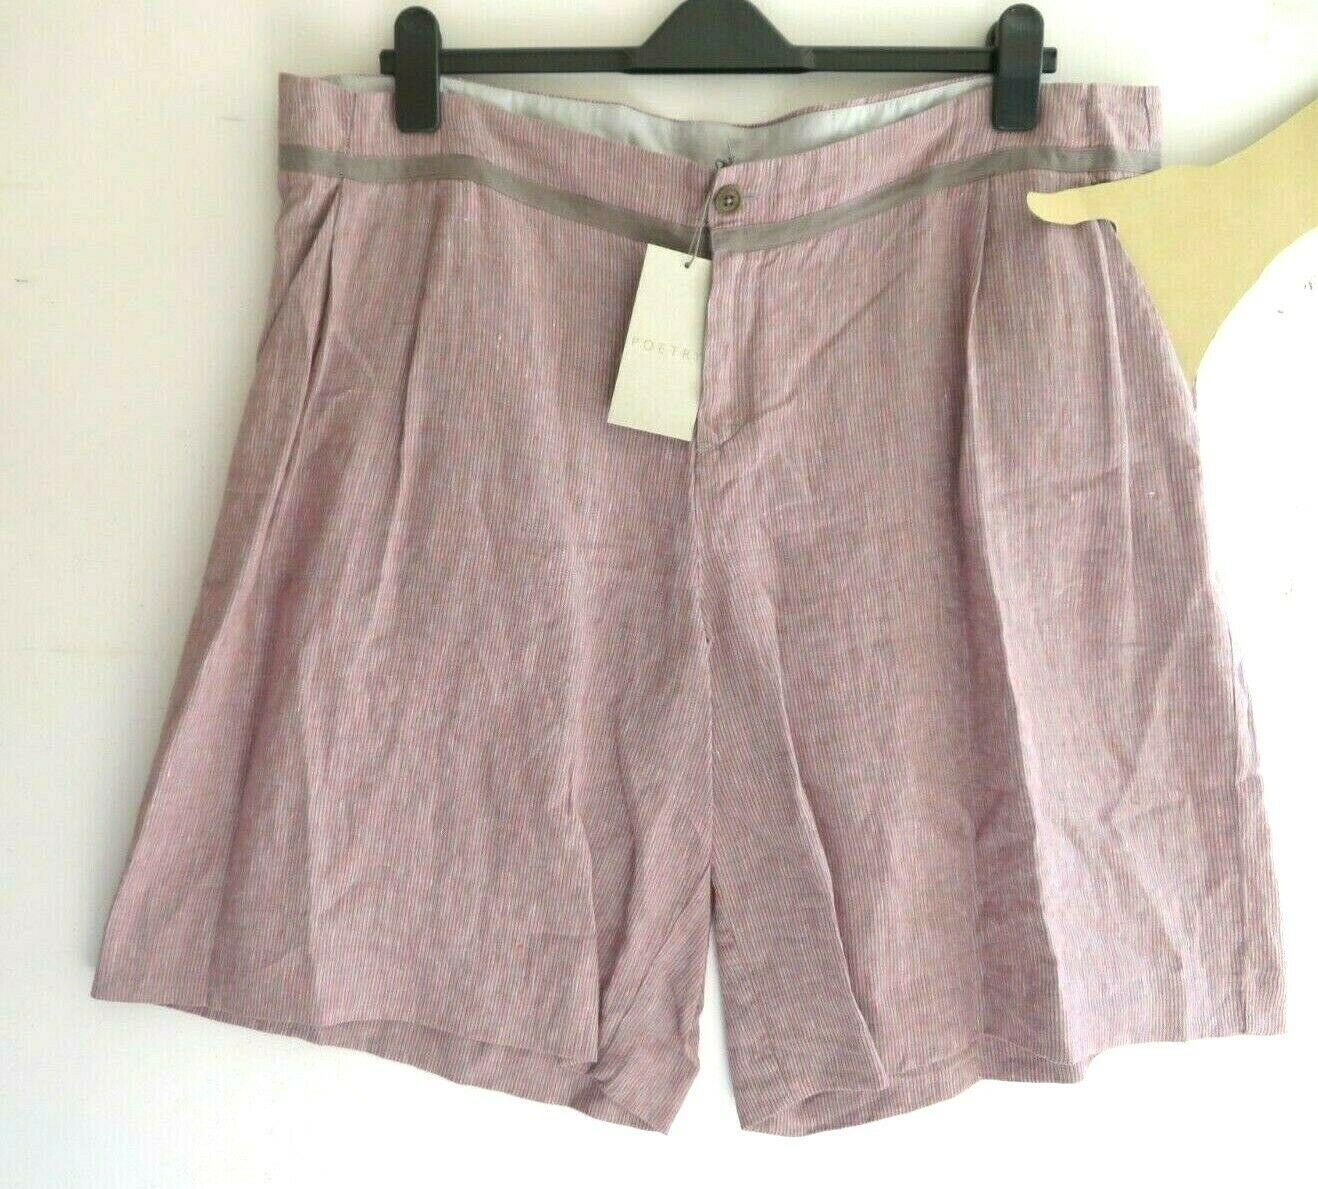 RRP  POETRY, 22 UK, Dusky Pink   Grey Striped 100% Linen High Rise Shorts